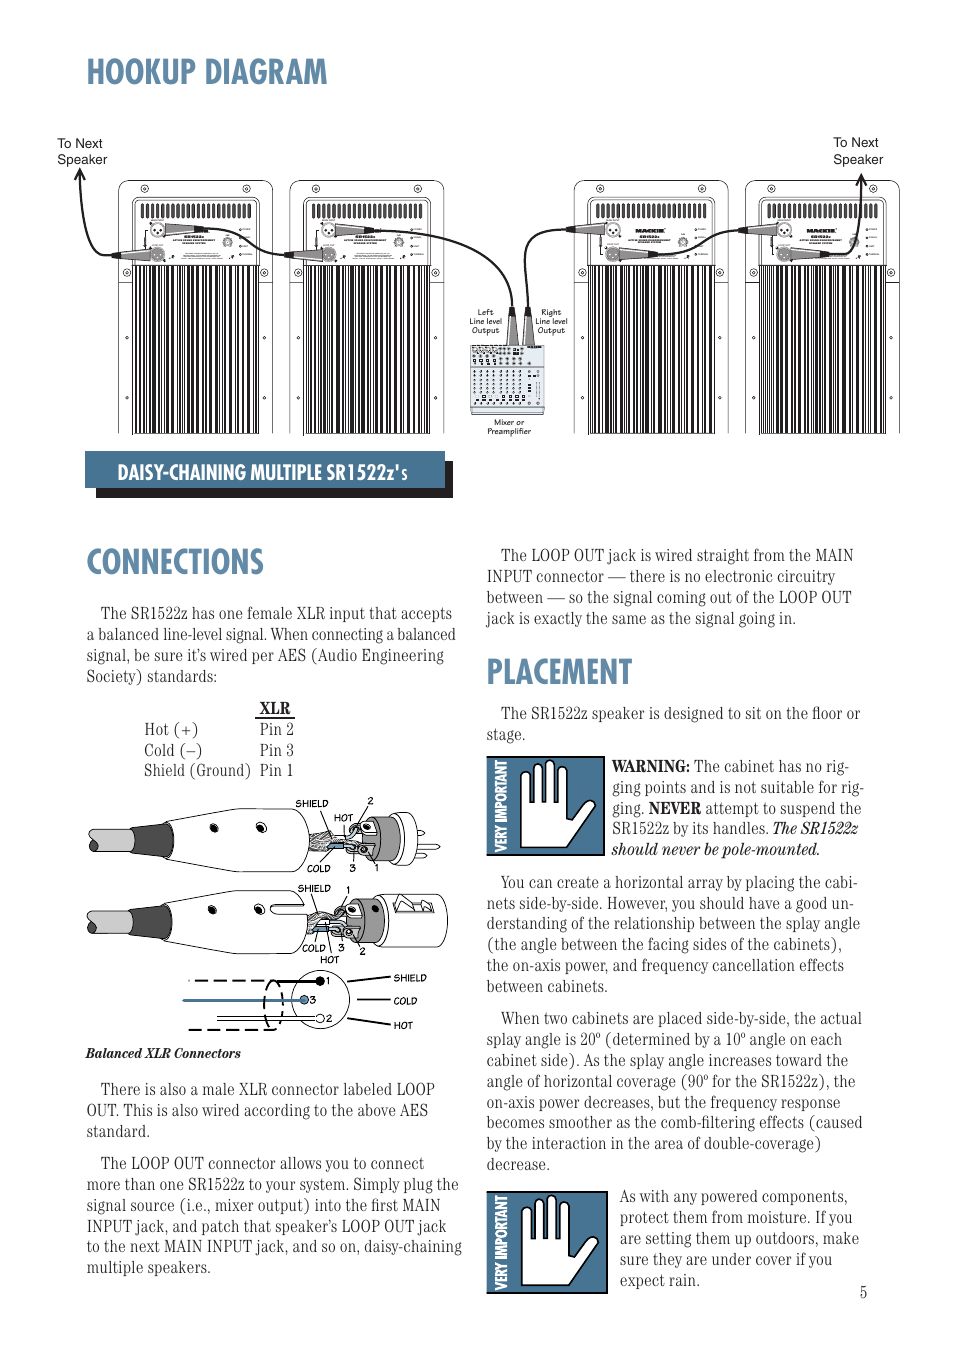 Hookup Diagram Connections Placement Mackie Sr1522z User Manual Hook Up Daisy Chaining Multiple Balanced Xlr Connectors